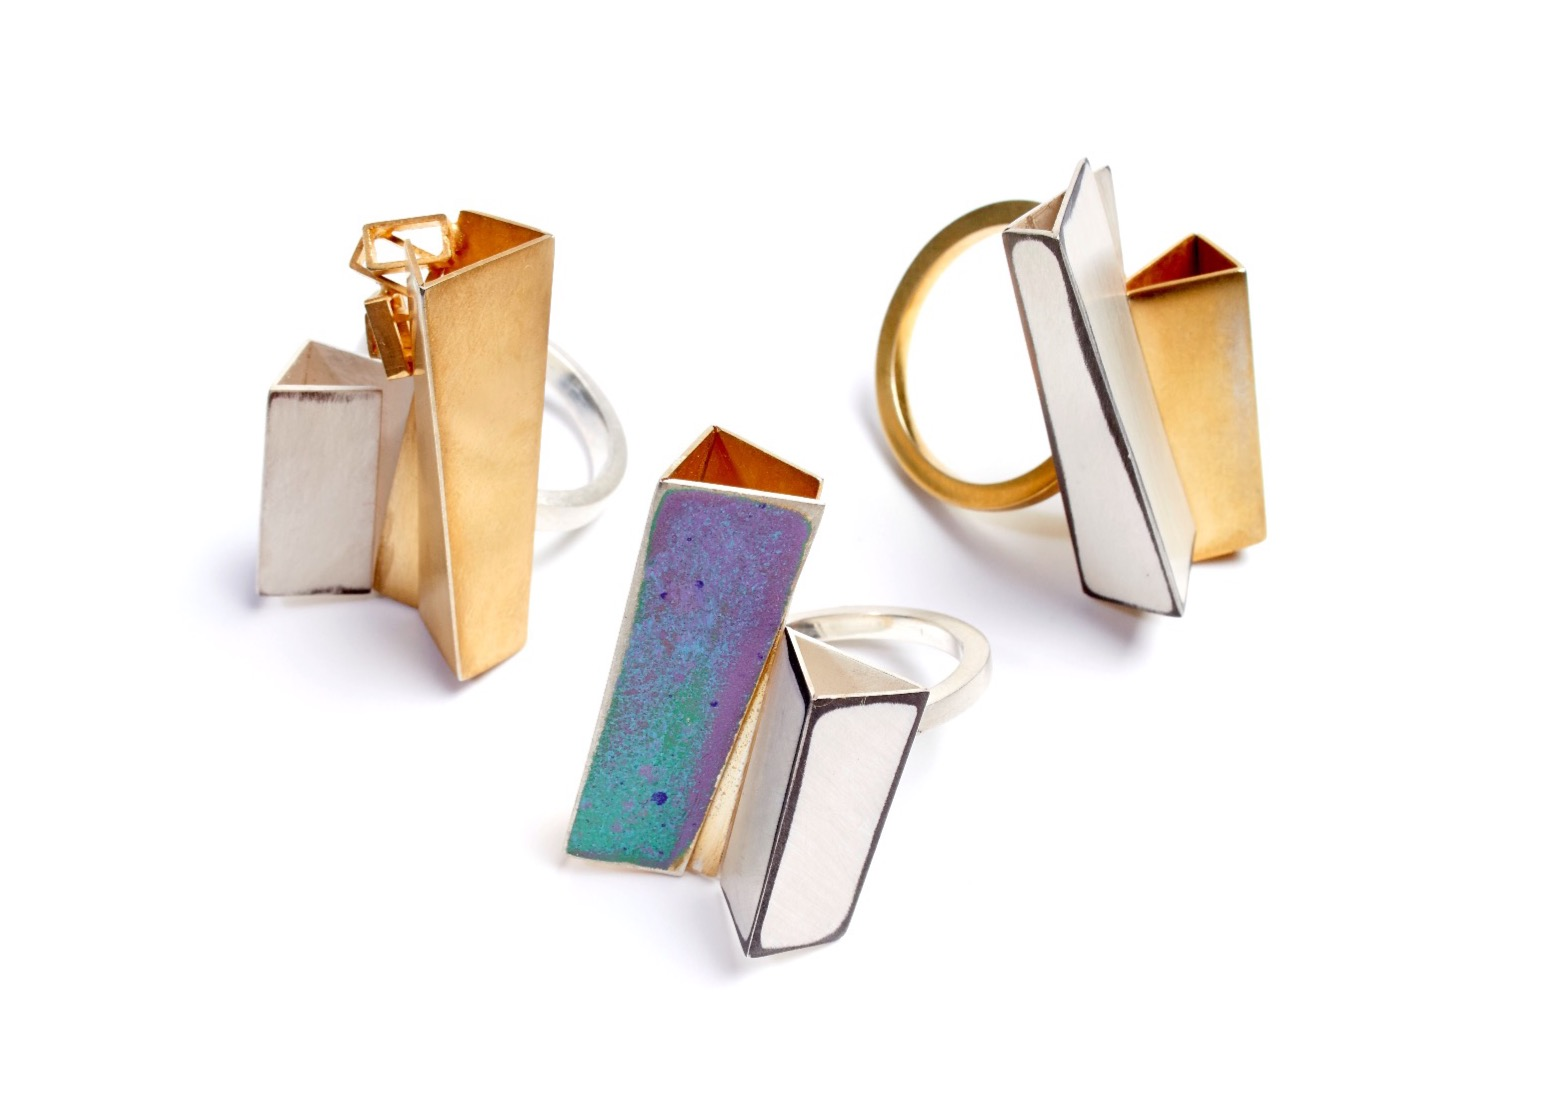 Architectural Riveted Rings